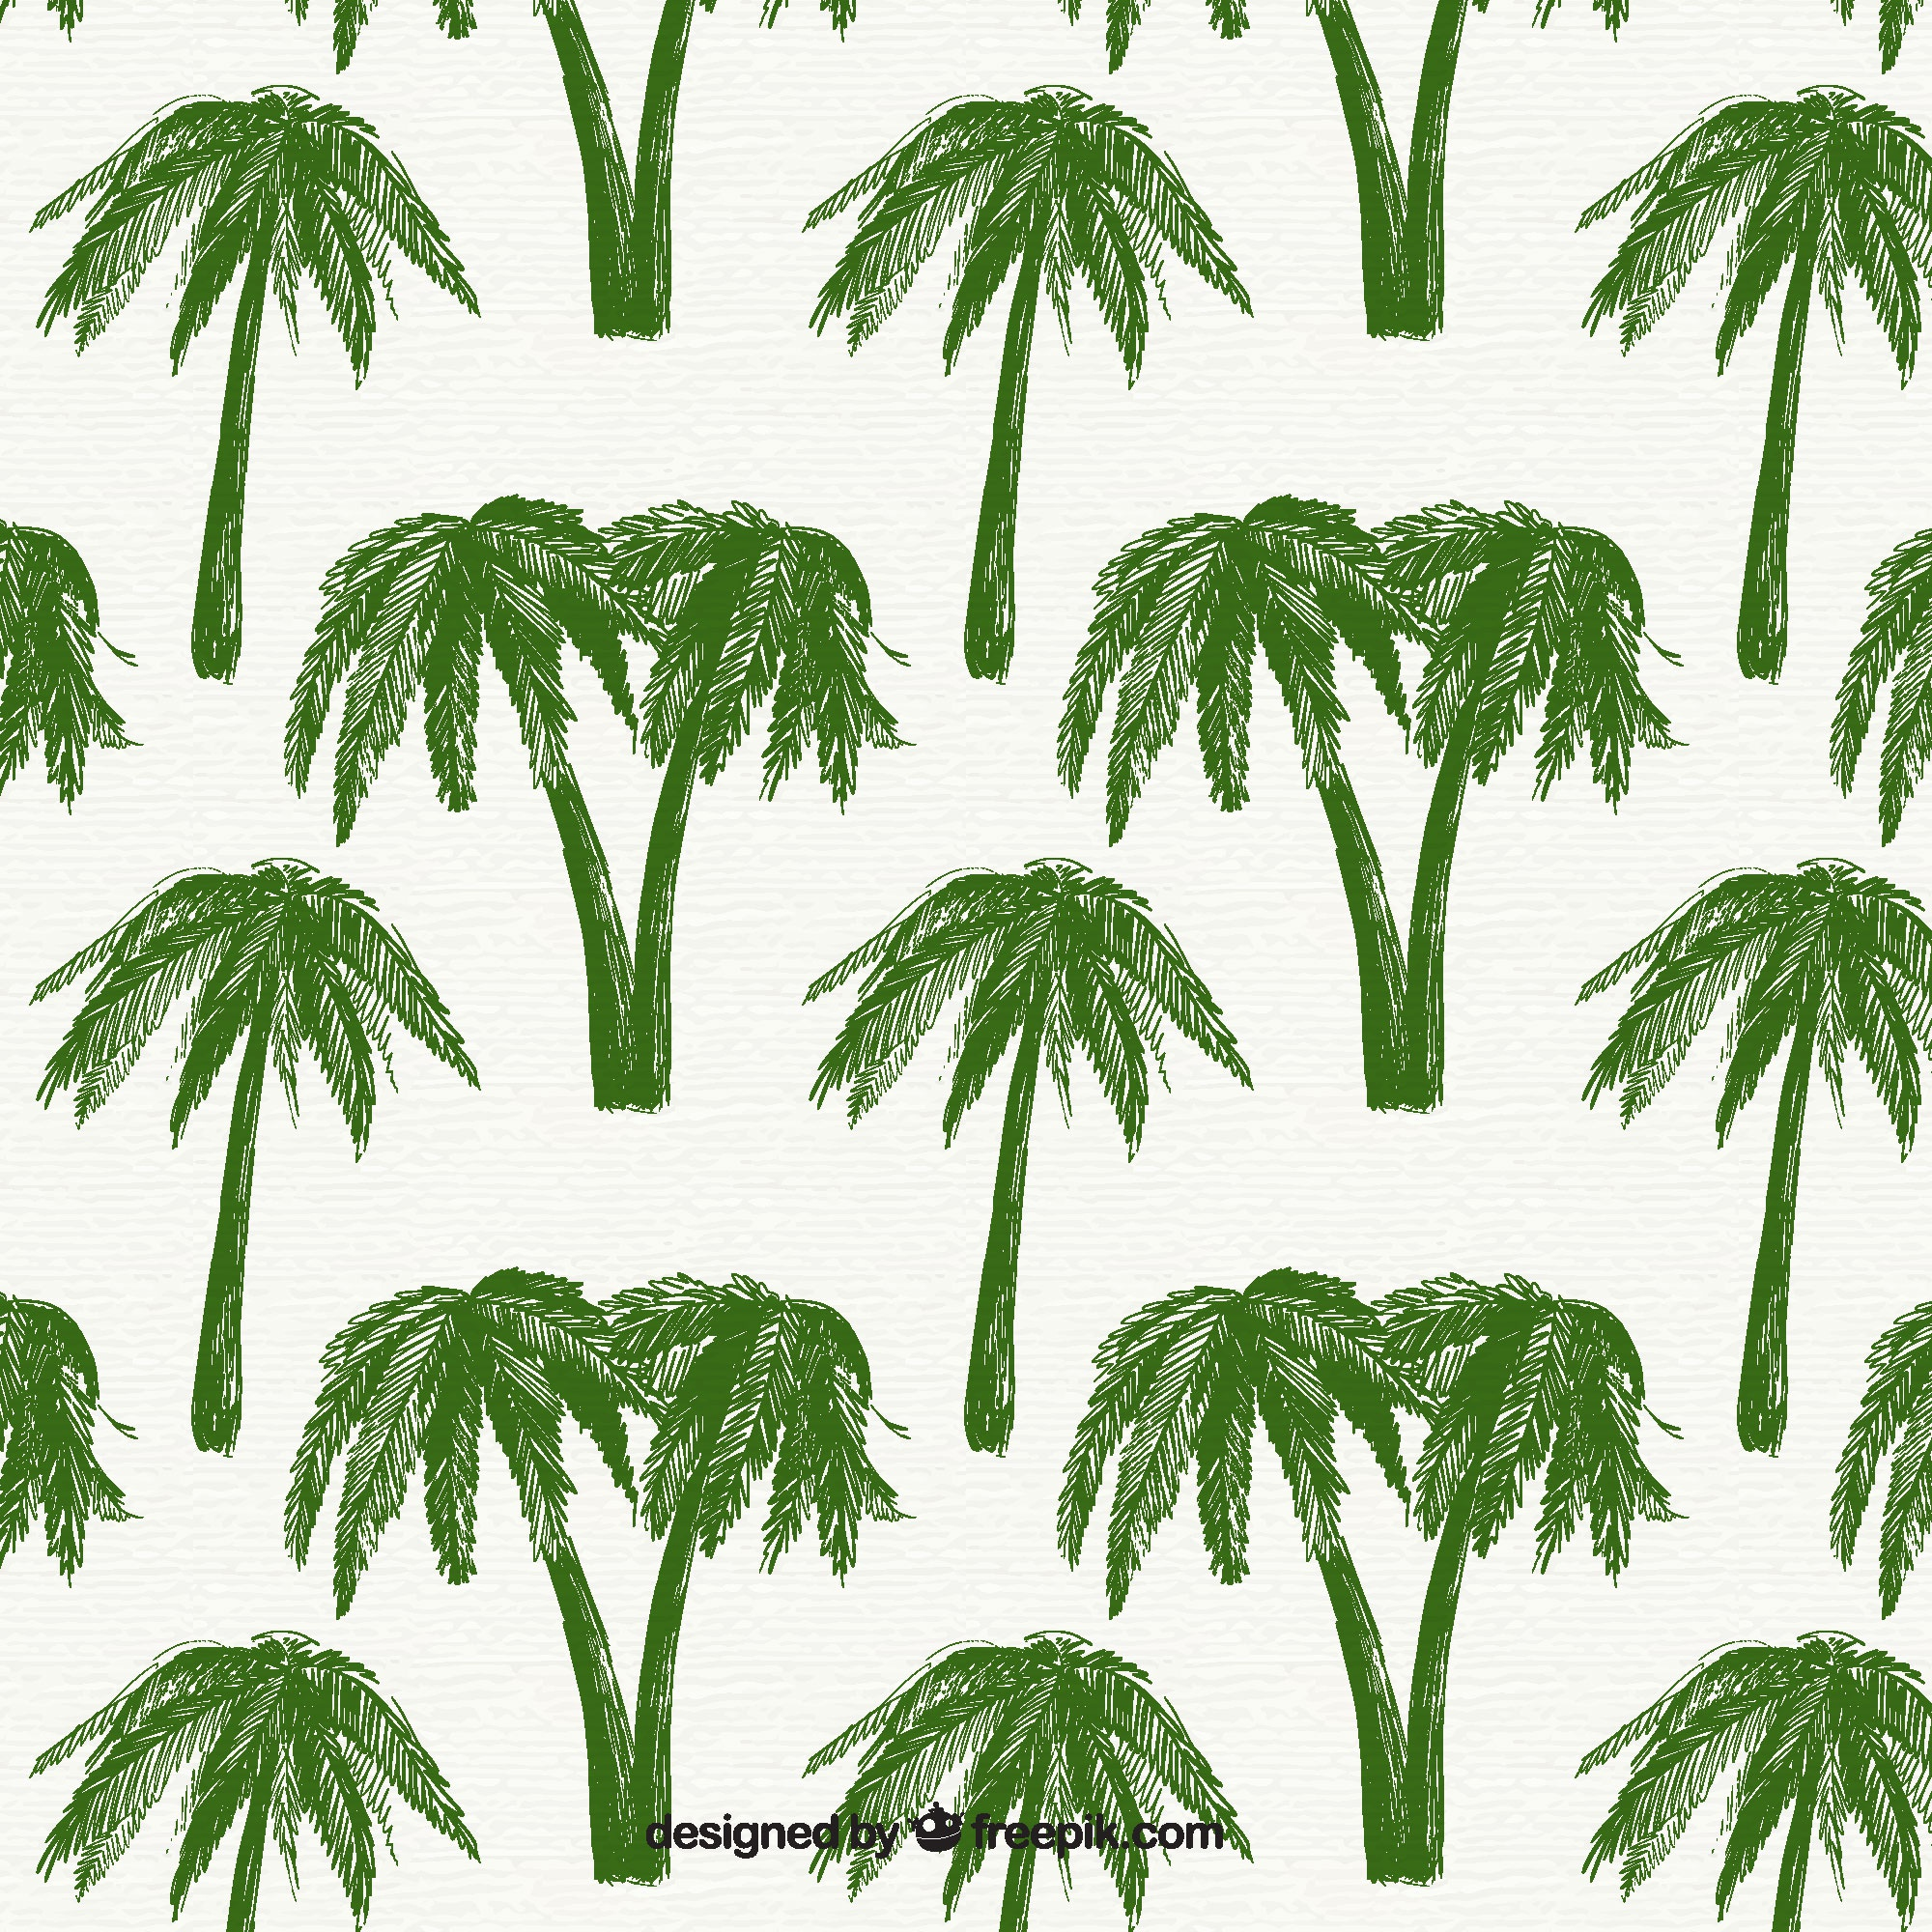 Decorative pattern with green palm trees